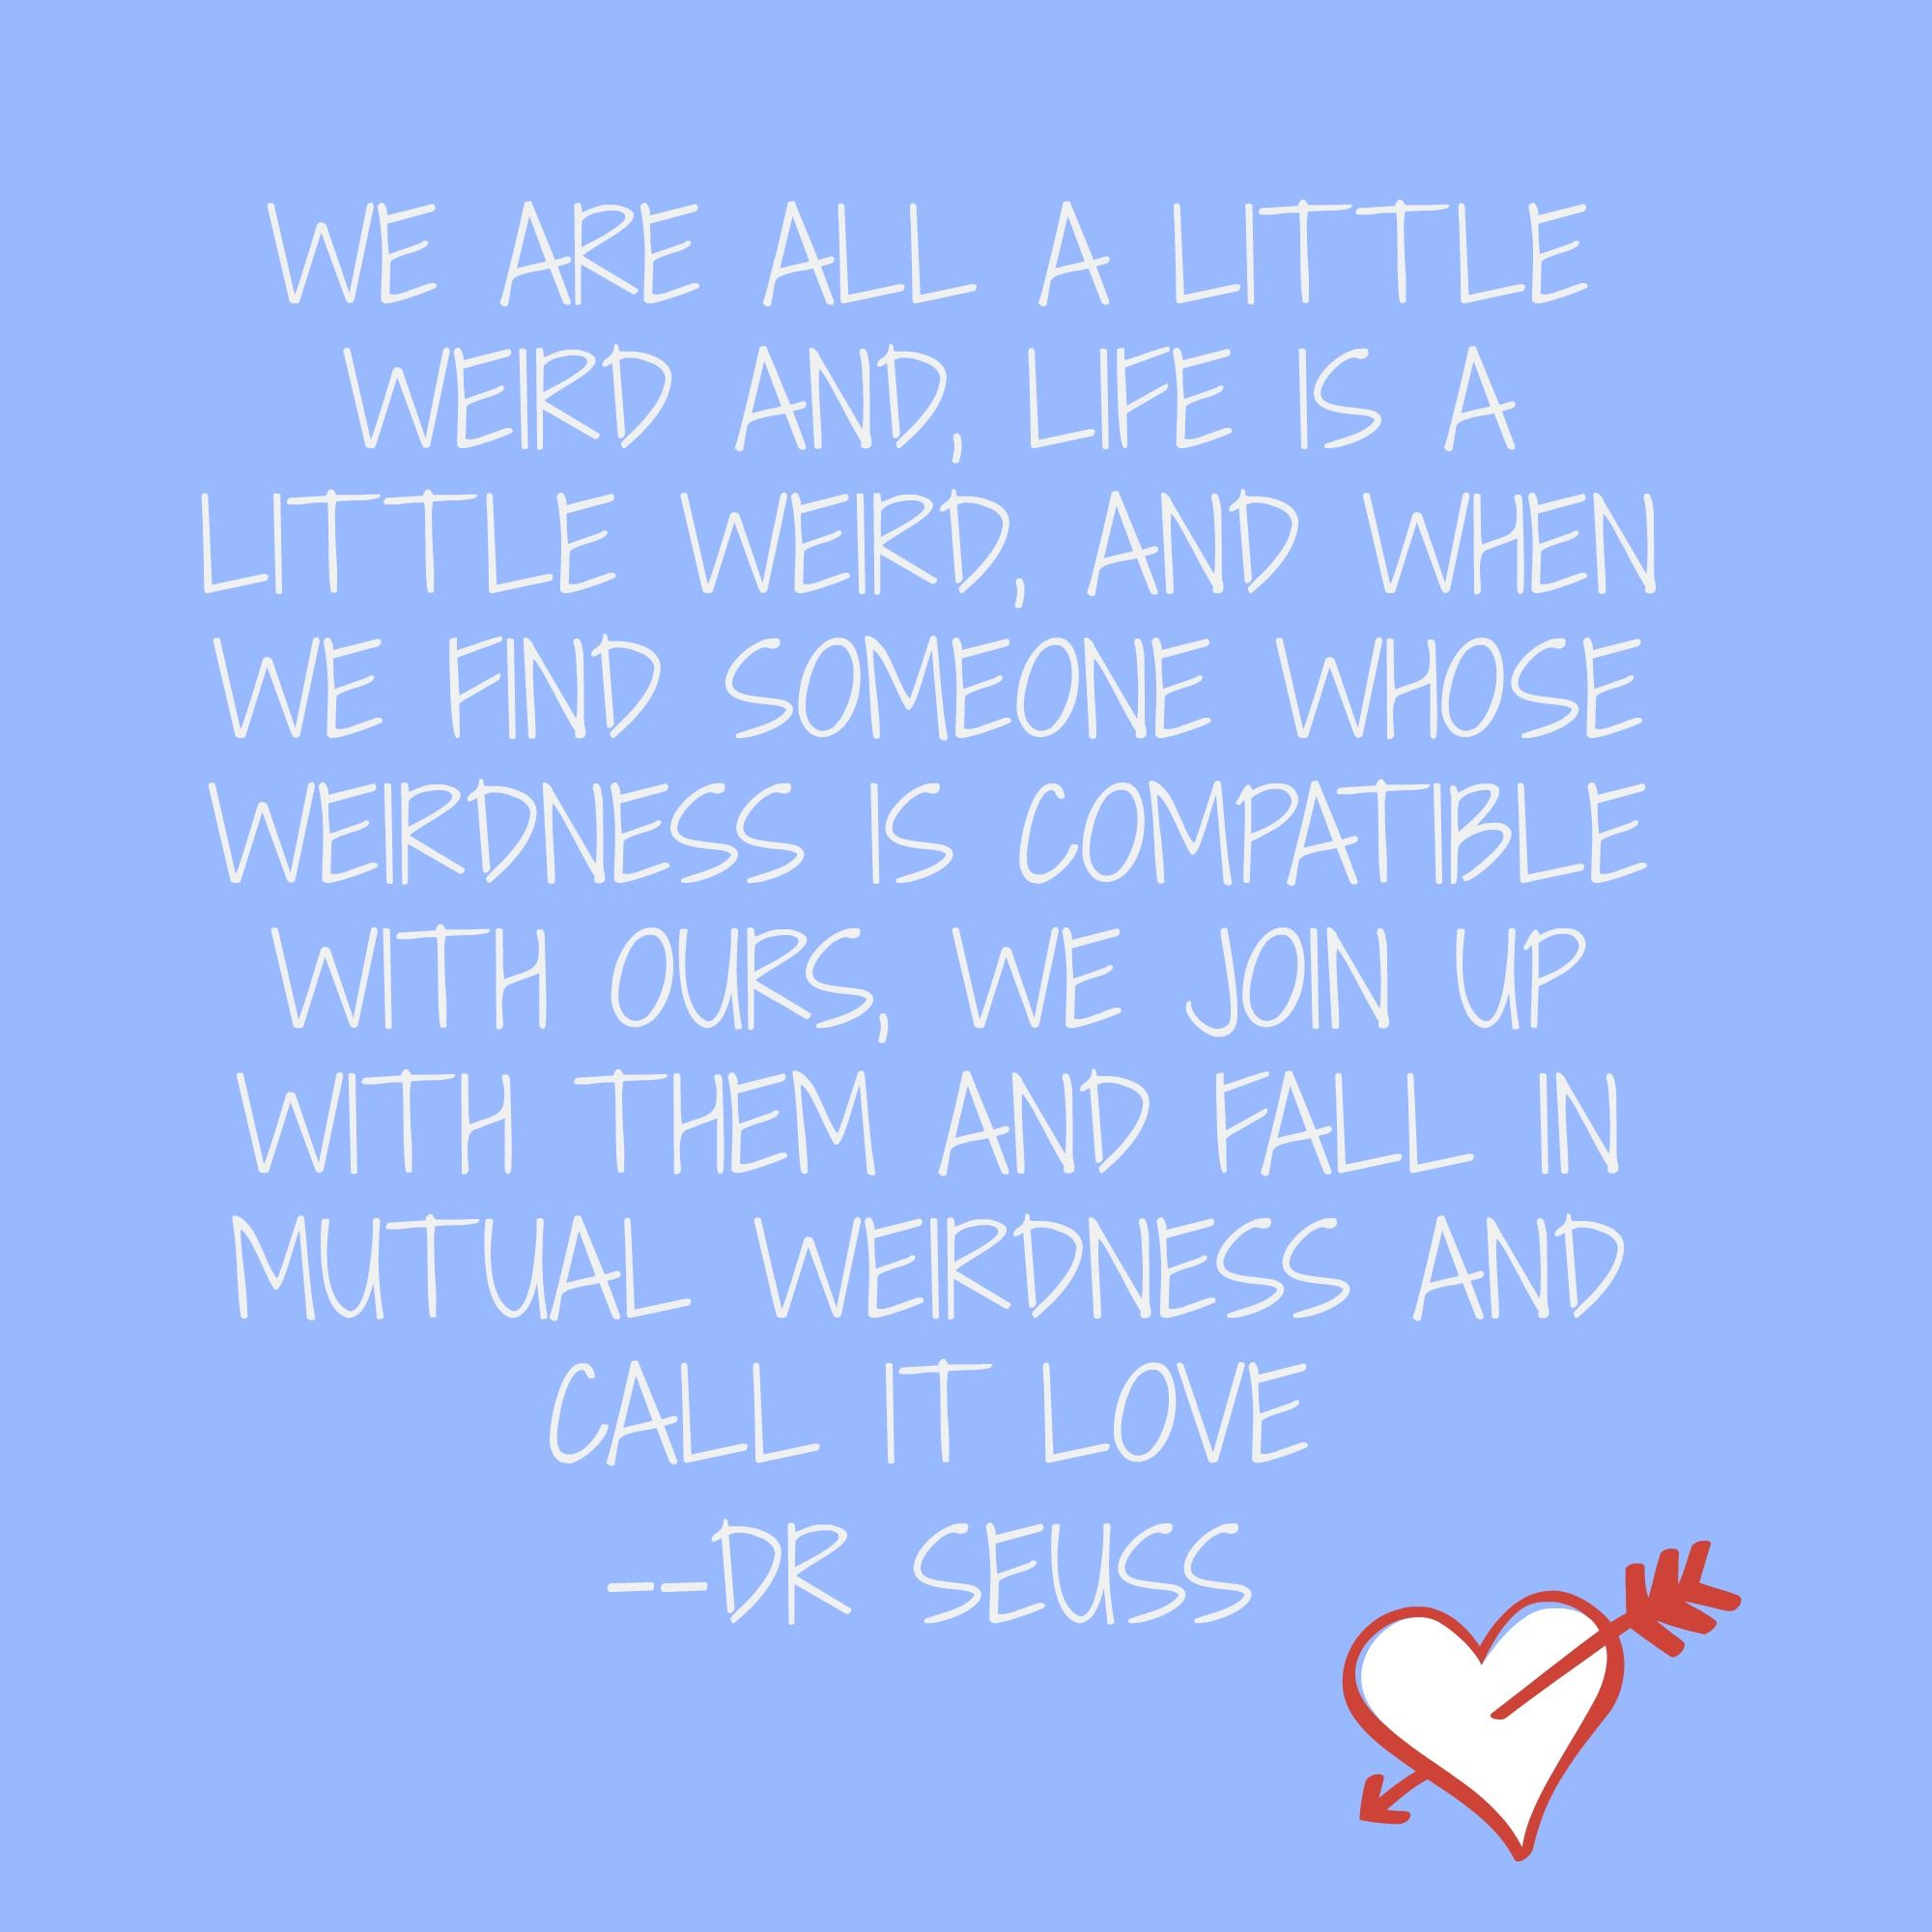 Dr Seuss Love Quote Here's A Take On Love From Drsuess To Make You Smiledrsuess